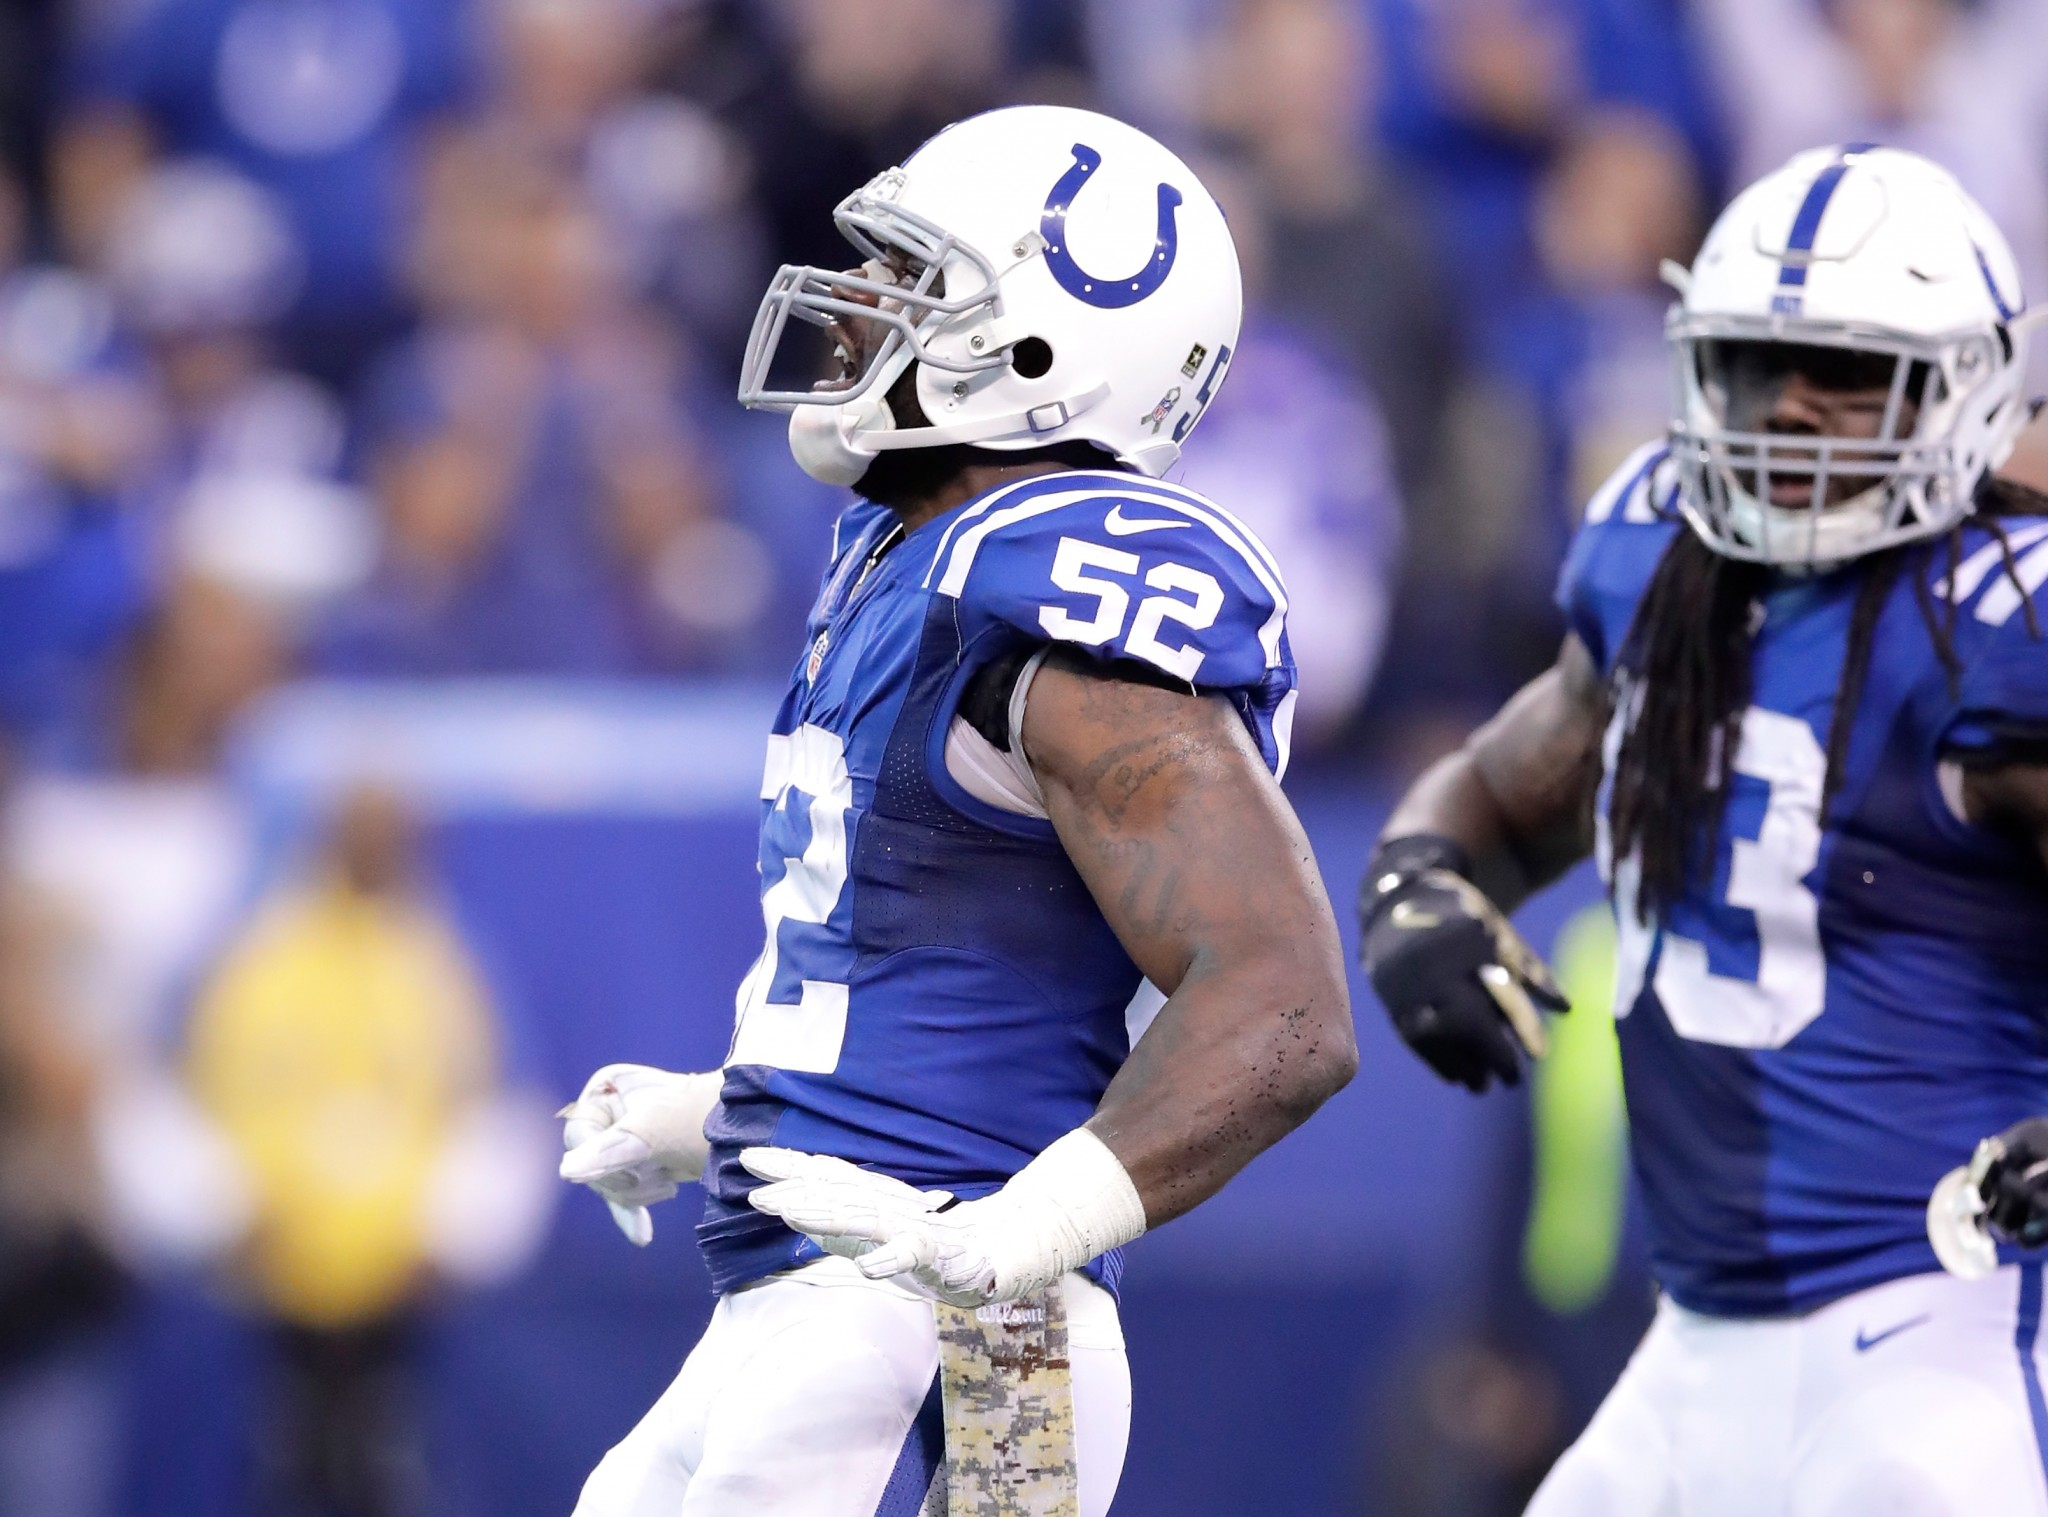 Colts promote linebacker after D'Qwell Jackson suspension